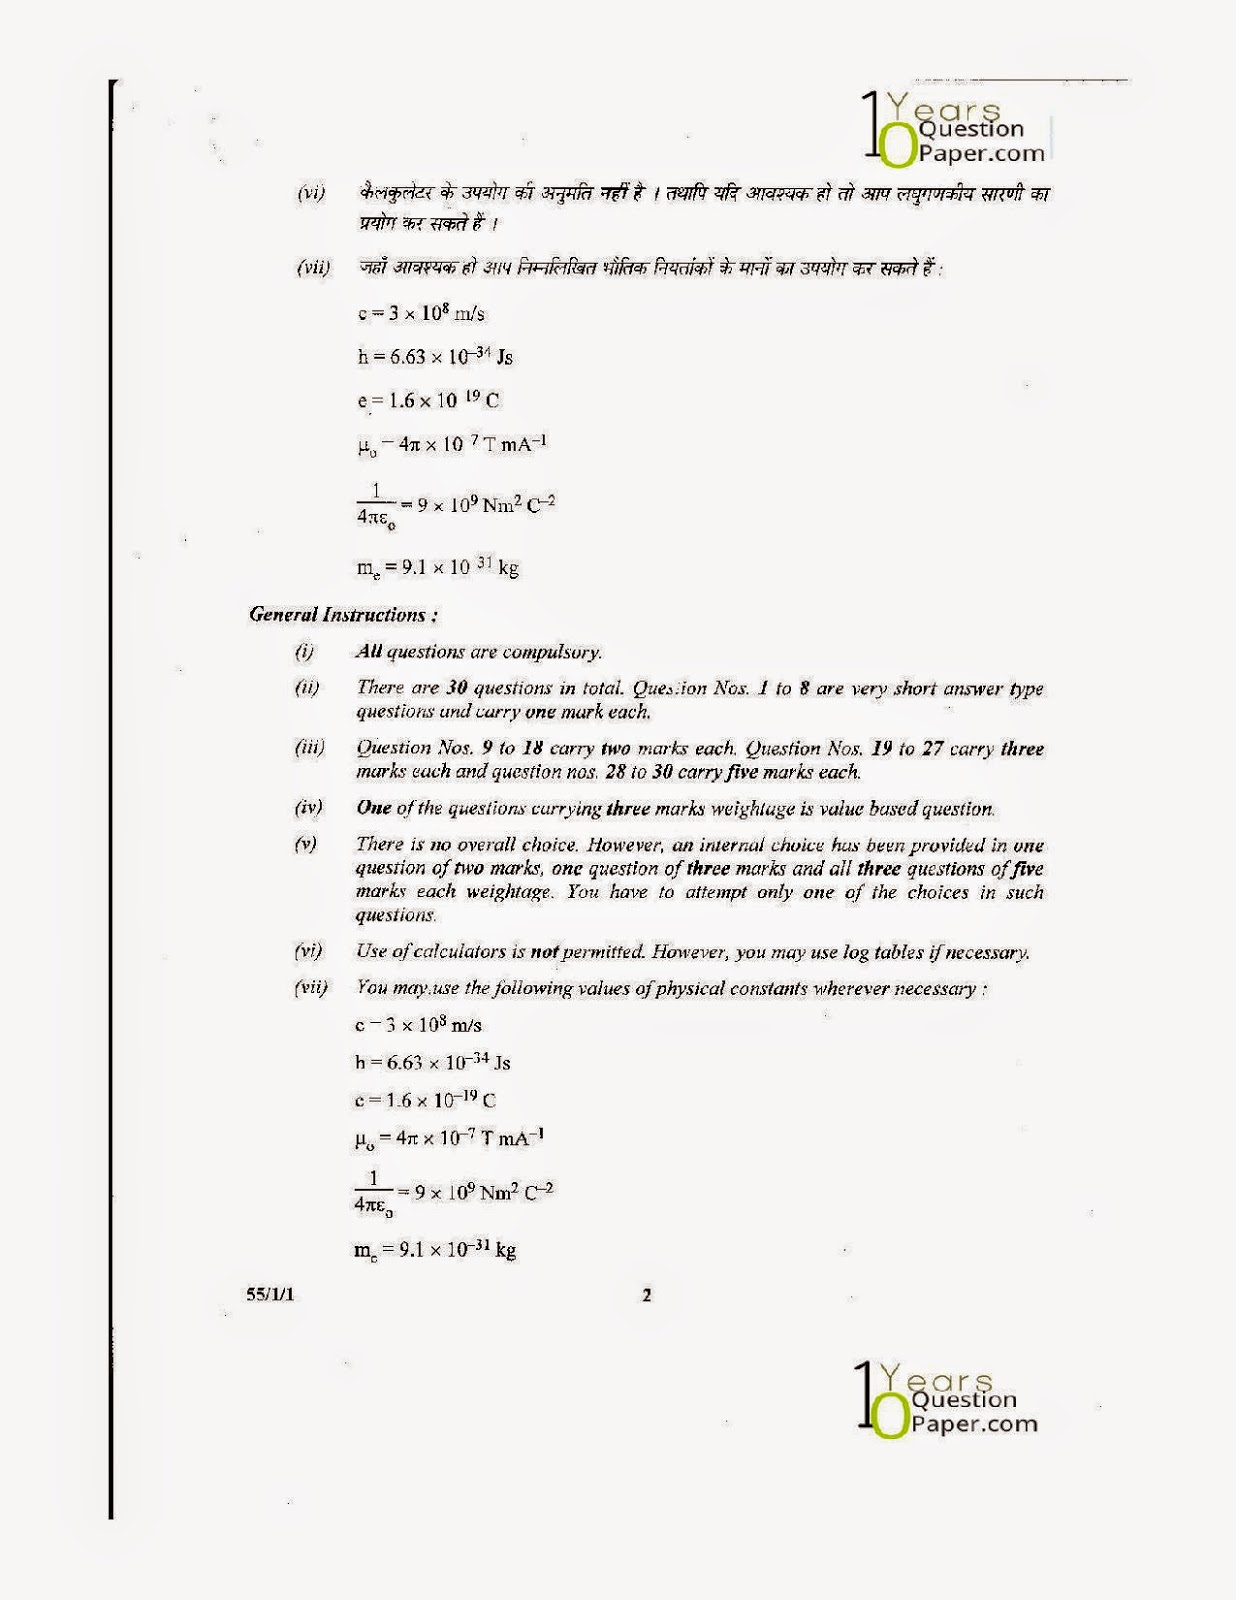 Cbse Class 12 Physics Question Paper 2013 Pdf